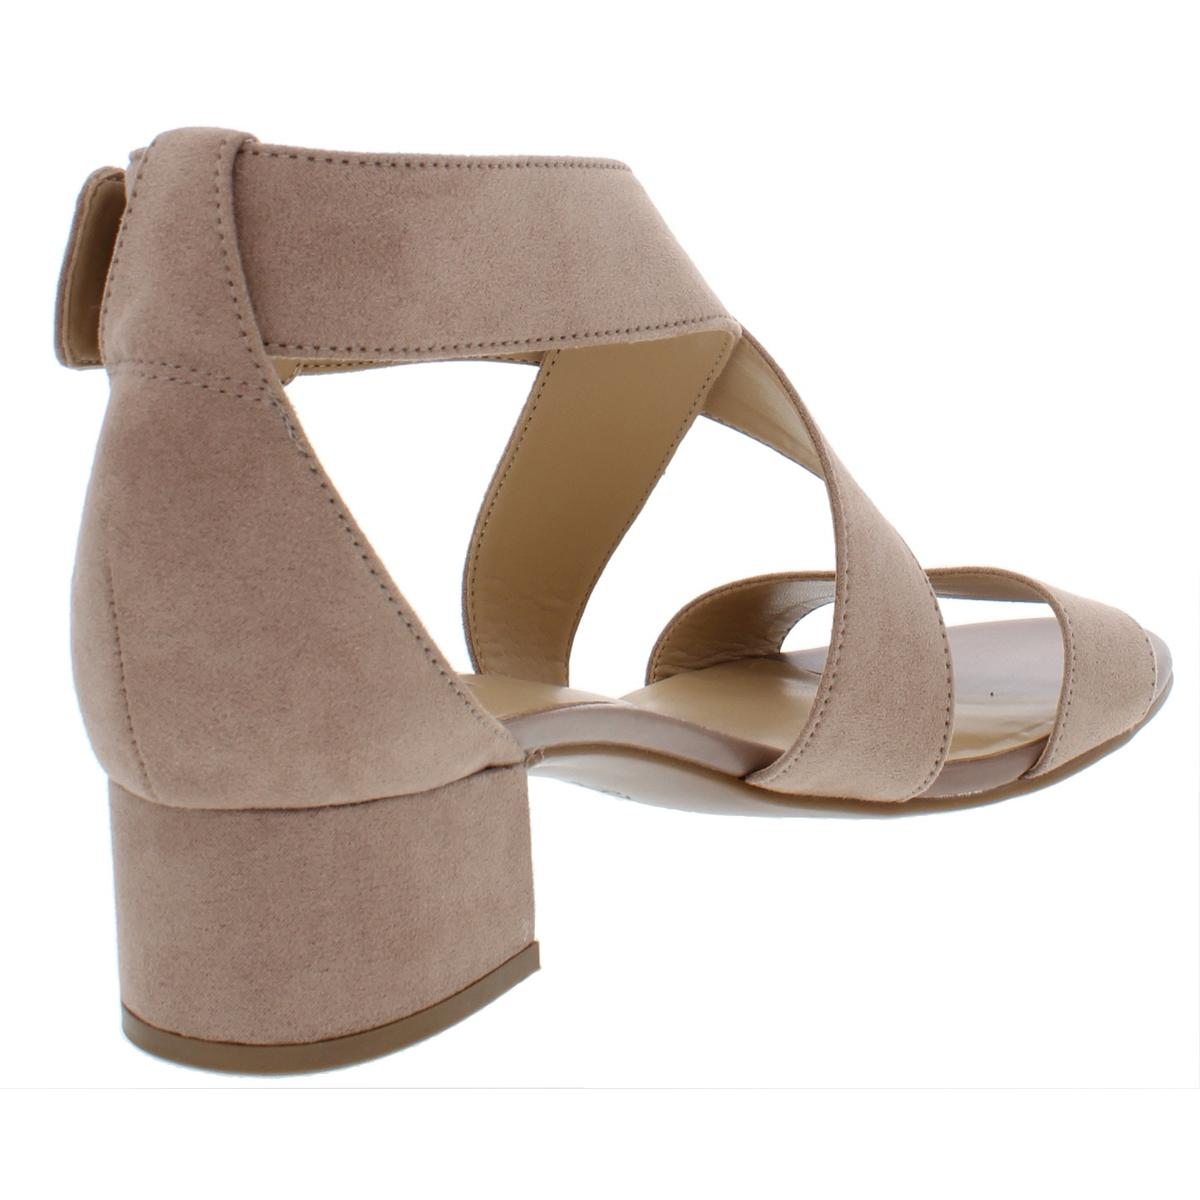 Naturalizer-Womens-Amelia-Faux-Suede-Strappy-Dress-Sandals-Evening-BHFO-4277 thumbnail 4